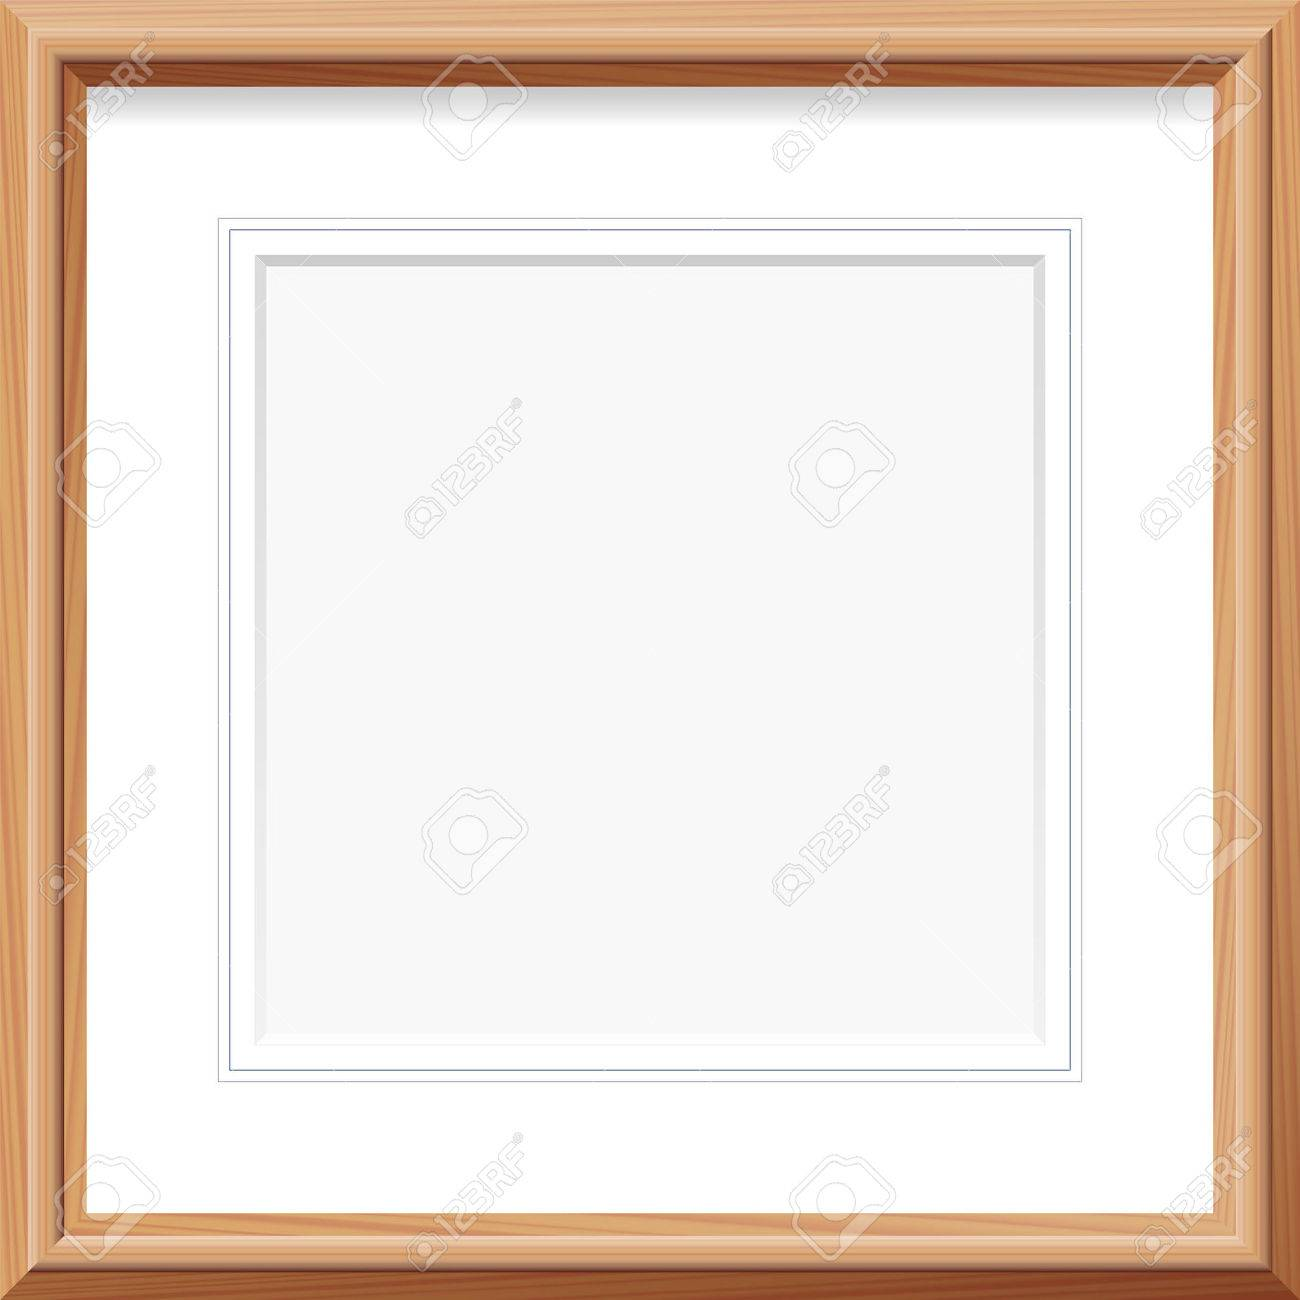 Vector   Wooden Frame With Square Mat And French Lines. Vector Illustration.